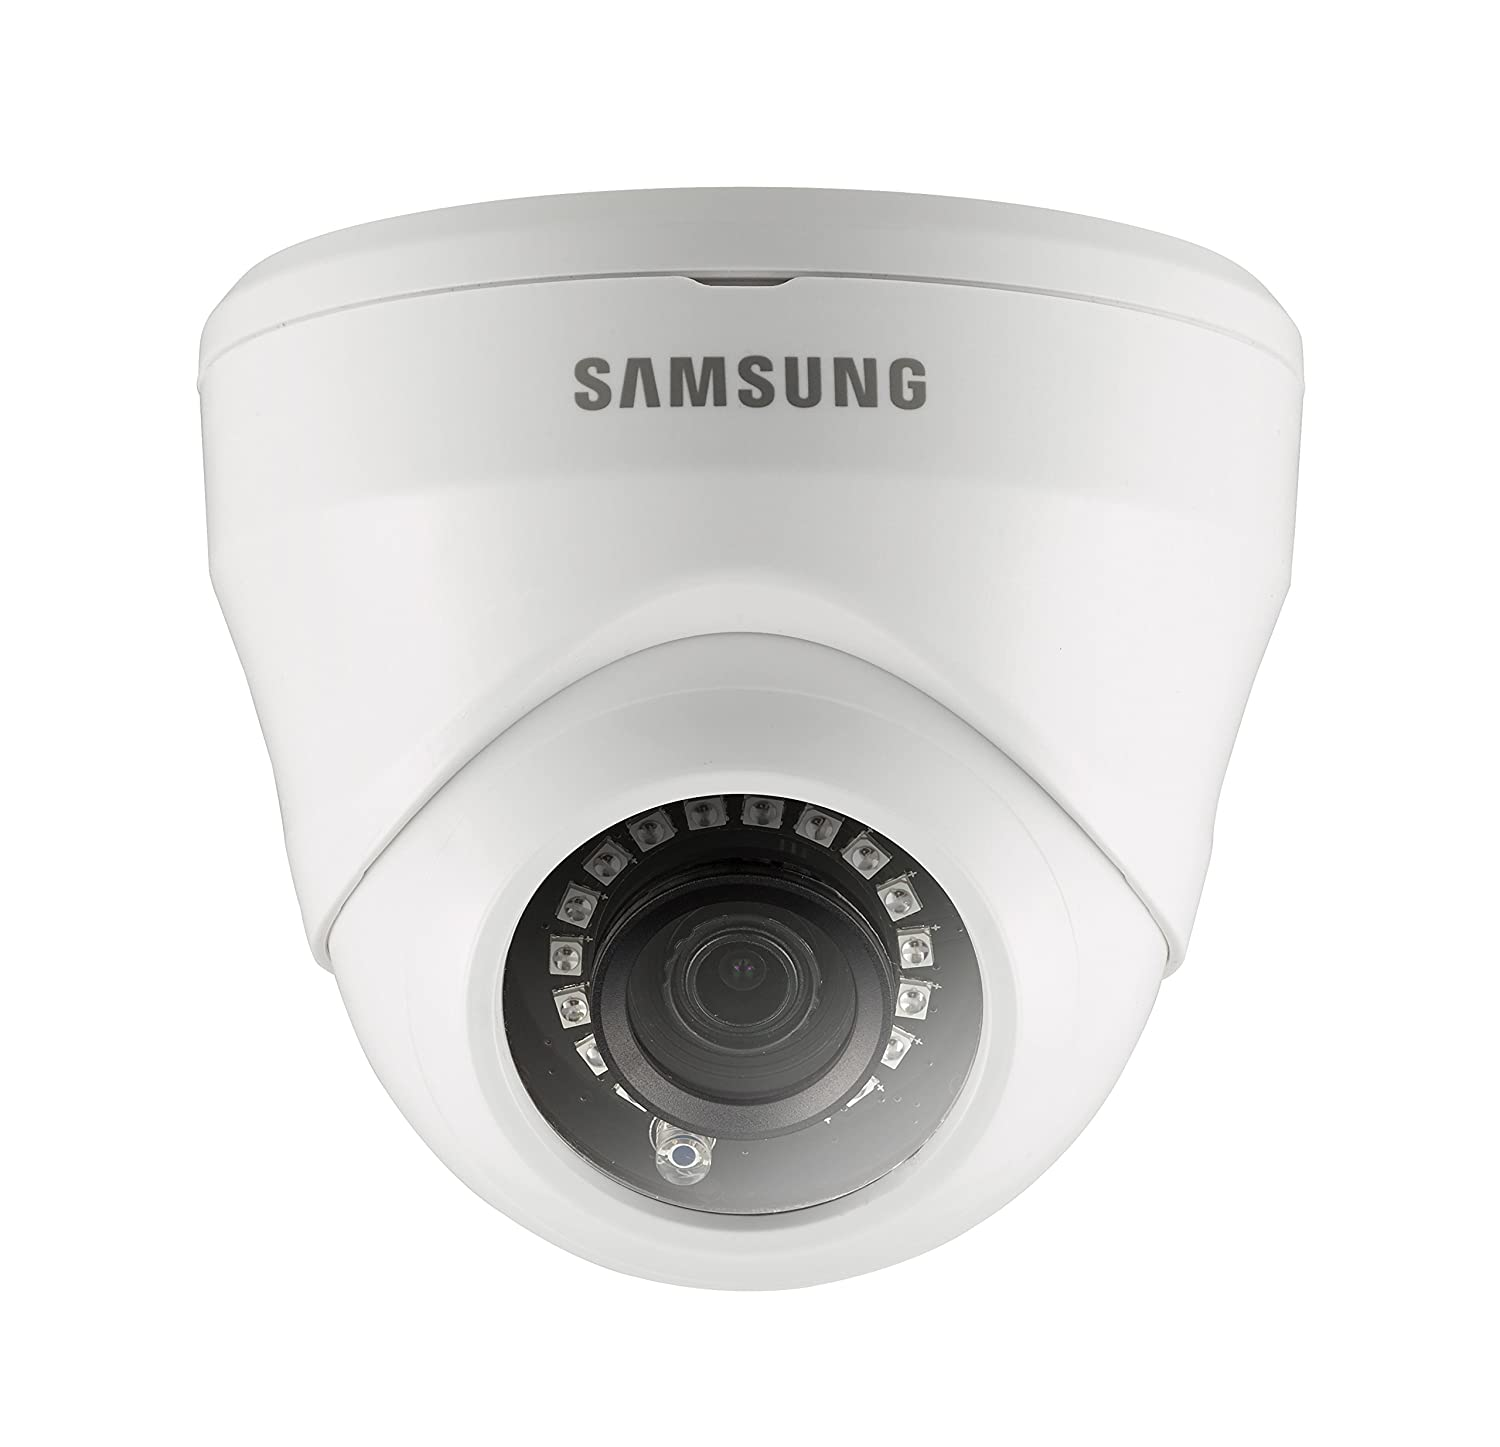 Samsung Wisenet SDC-9443BC 1080p HD Weatherproof Bullet Camera Compatible with SDH-B74041 SDH-B74081